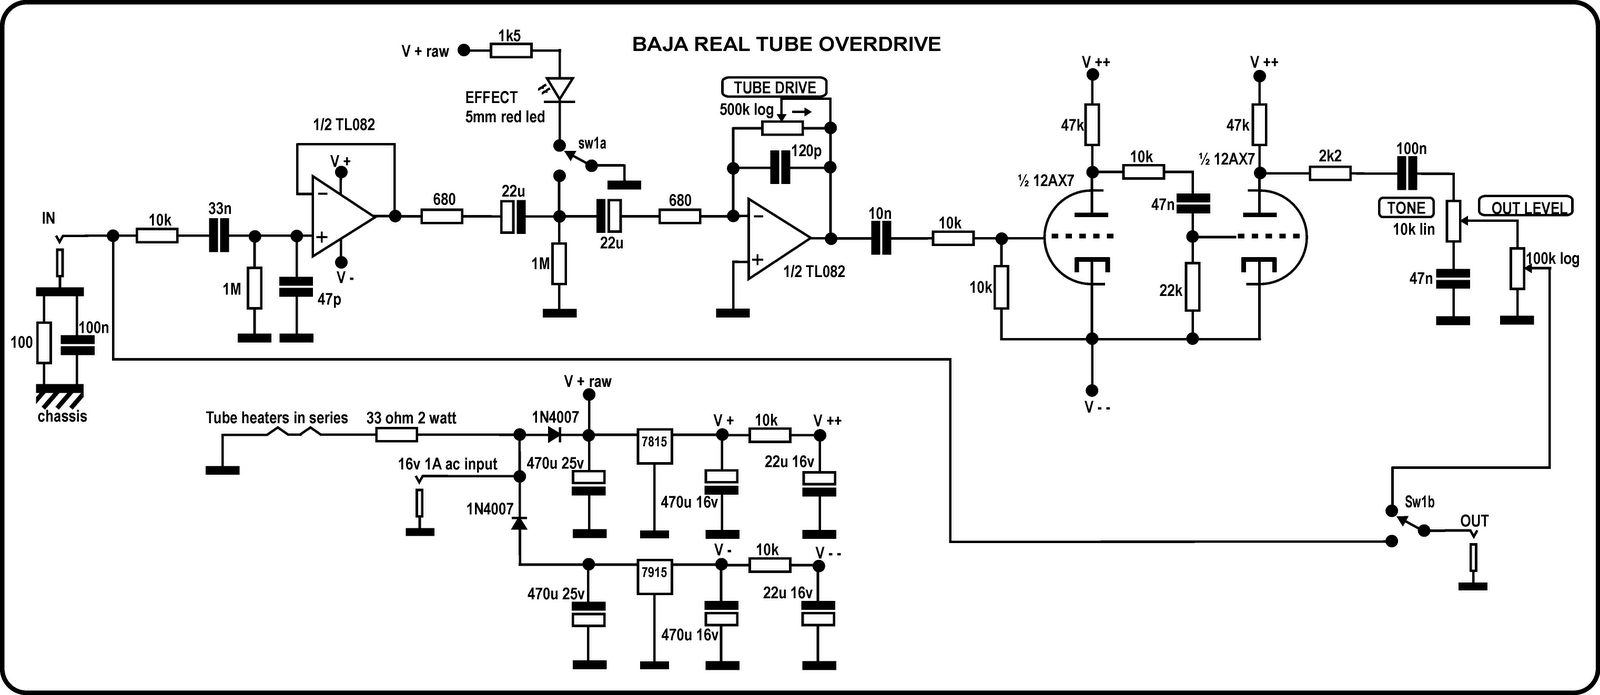 03ff390309d2644dfa300712d7089c44 baja real tube overdrive schematic png 1,600�695 pixels pcb Basic Electrical Wiring Diagrams at readyjetset.co